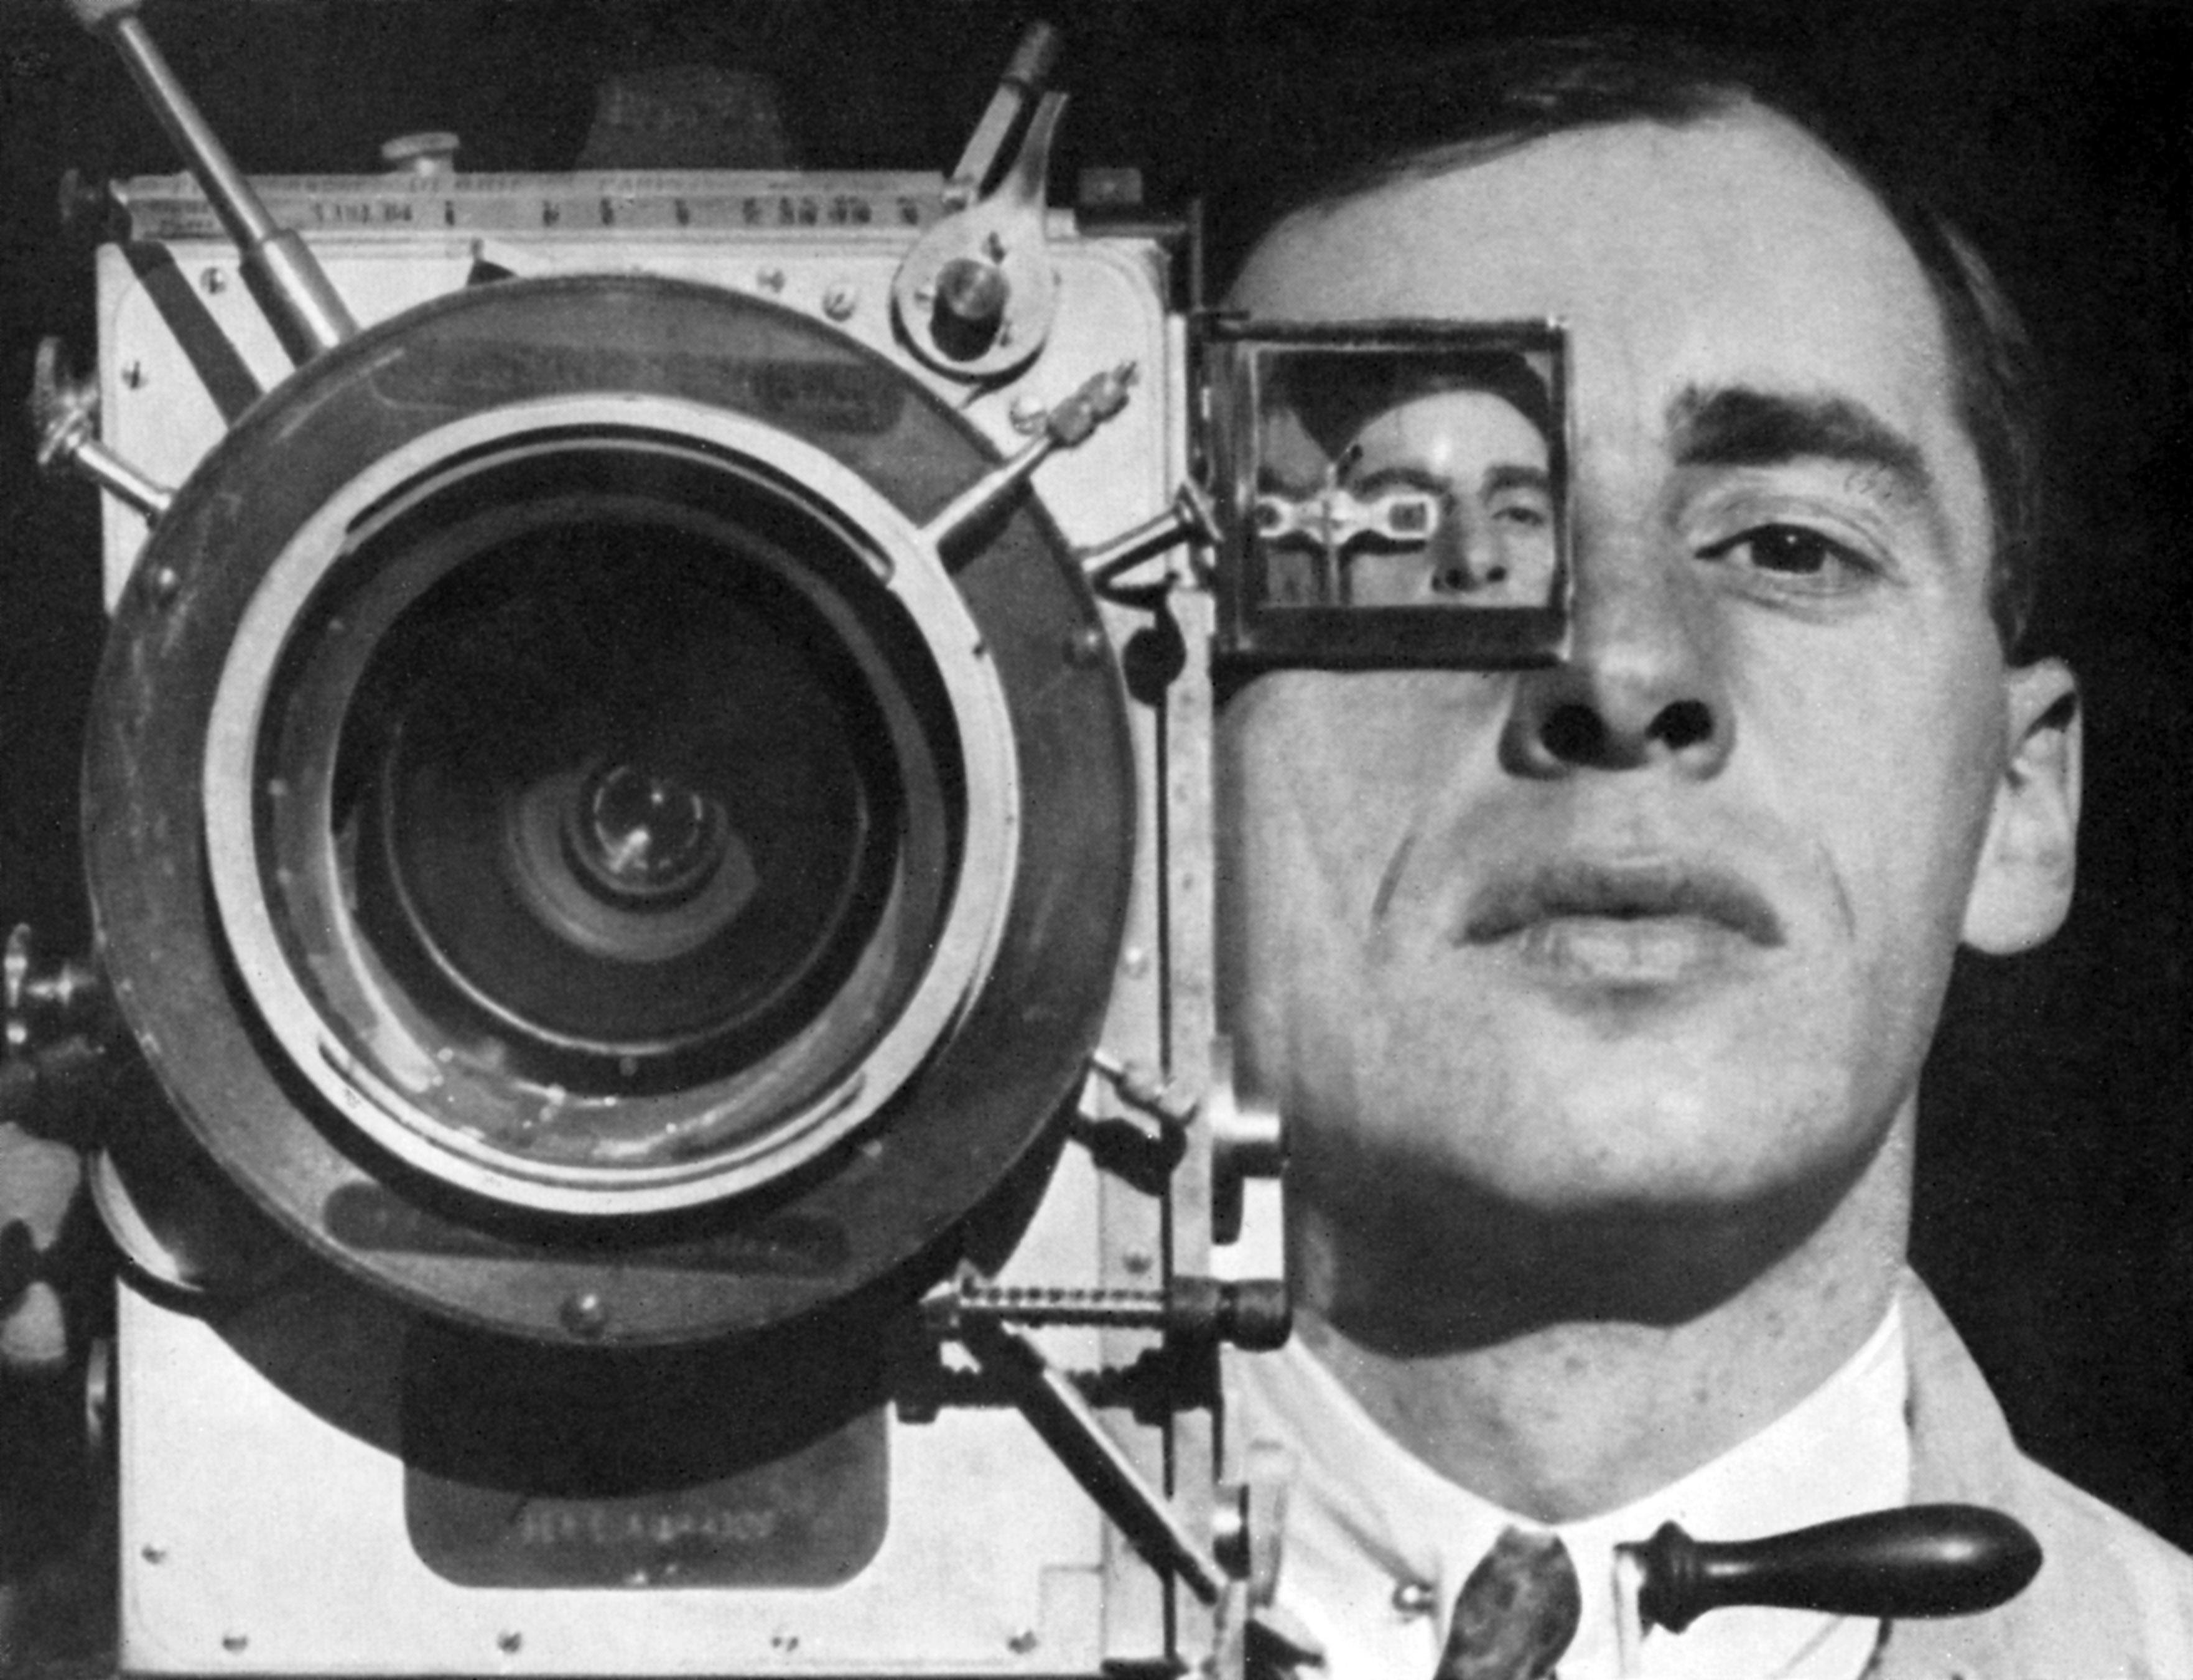 GRAPHIC: Mikhail Kaufman poses with a camera in Man with a Movie Camera, directed by Dziga Vertov (pseudonym of David Abelevich Kaufman), Russia, 1929